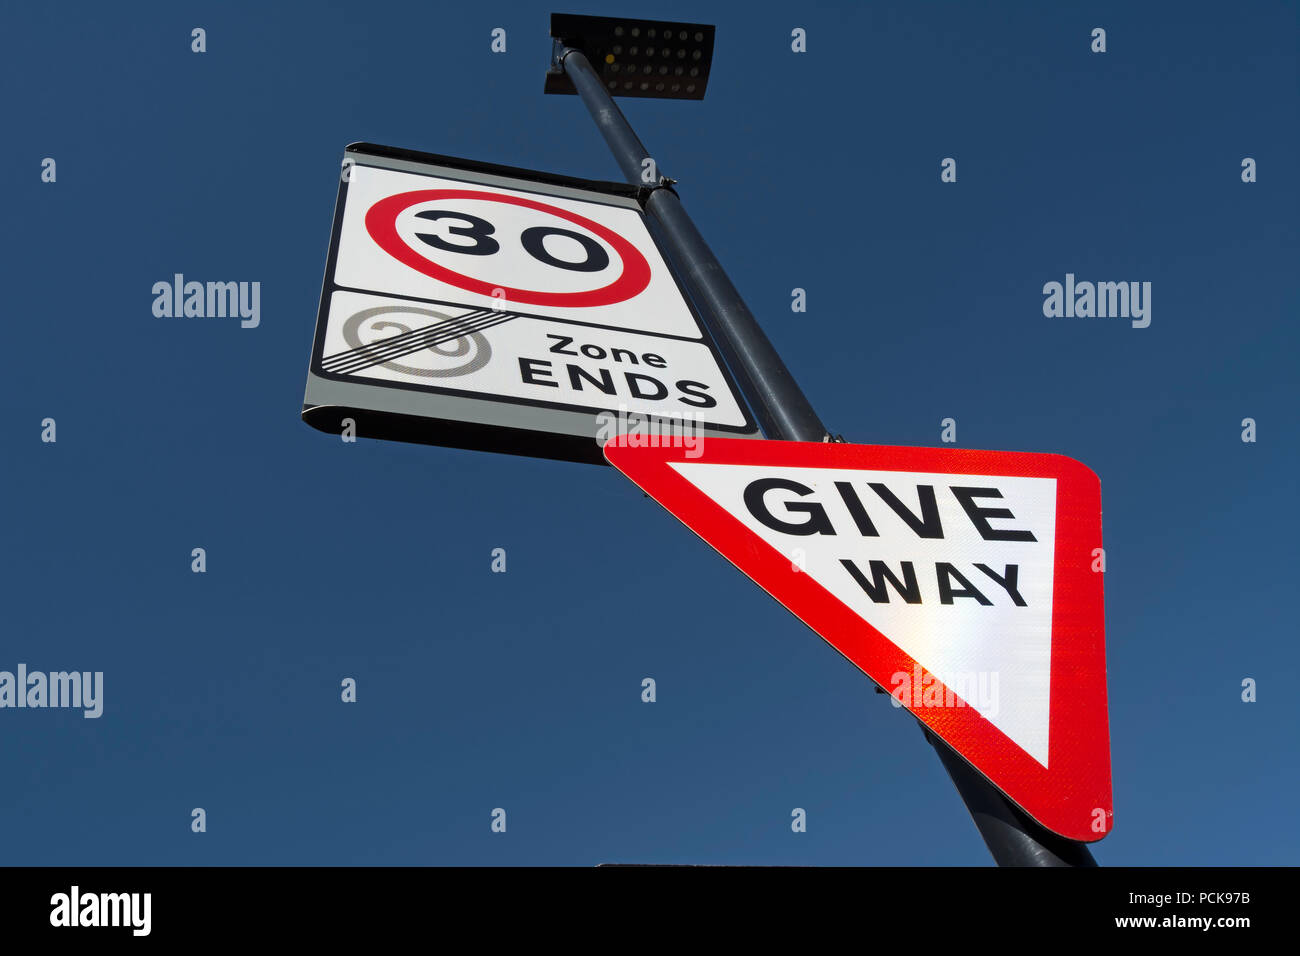 british road signs indicating give way and the start of a 30mph speed limit and the end of a 20mph speed limit zone Stock Photo